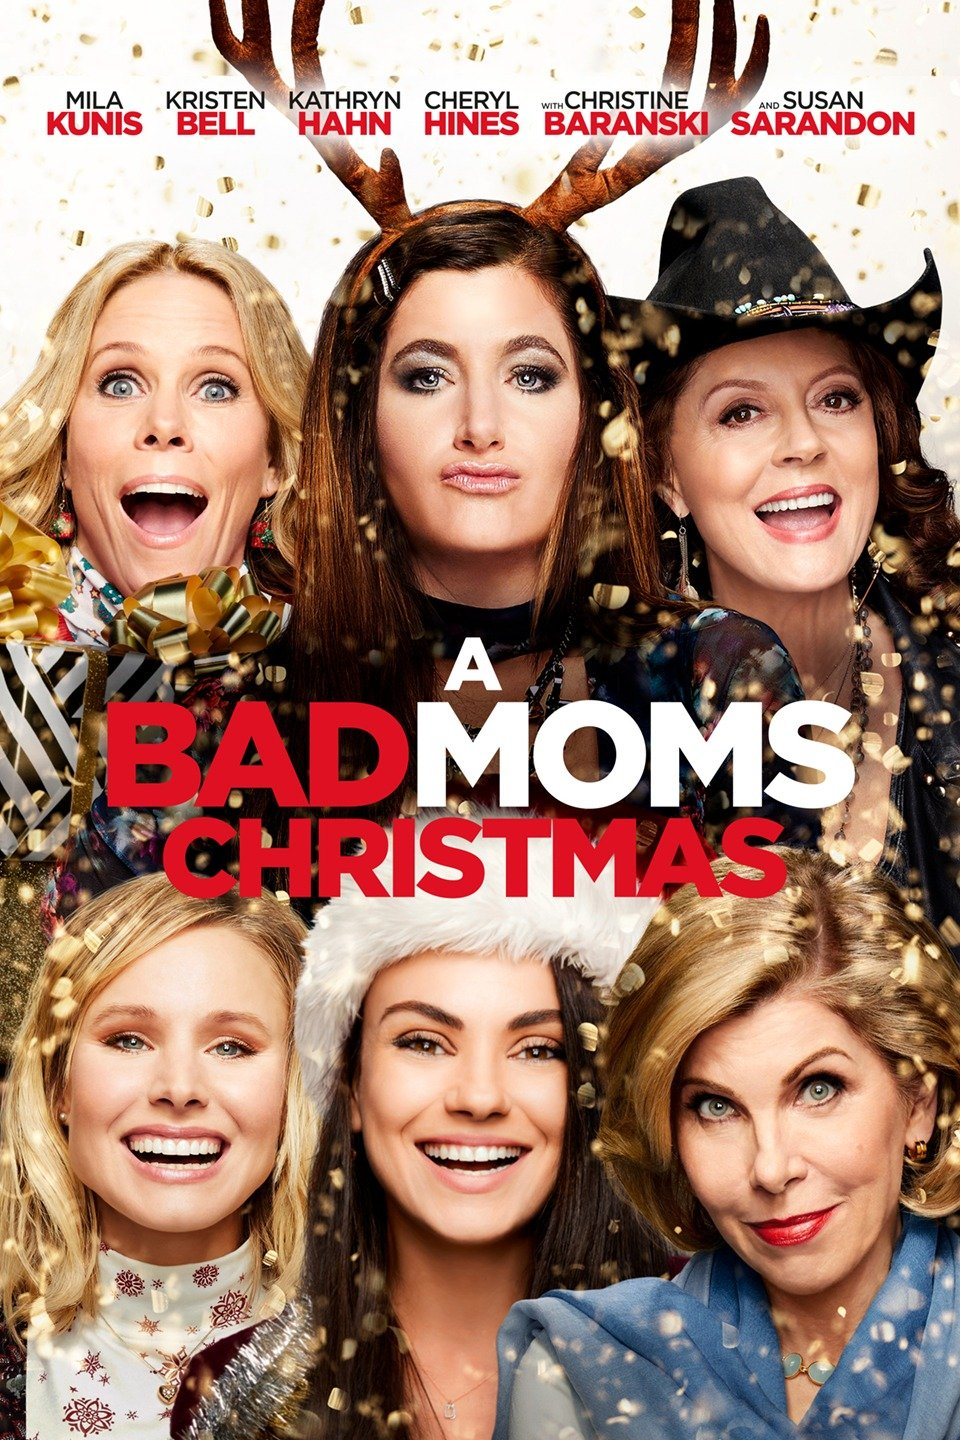 A Bad Moms Christmas Dvd Cover.Dvd Releases For Week Of Feb 4 Ontvtoday